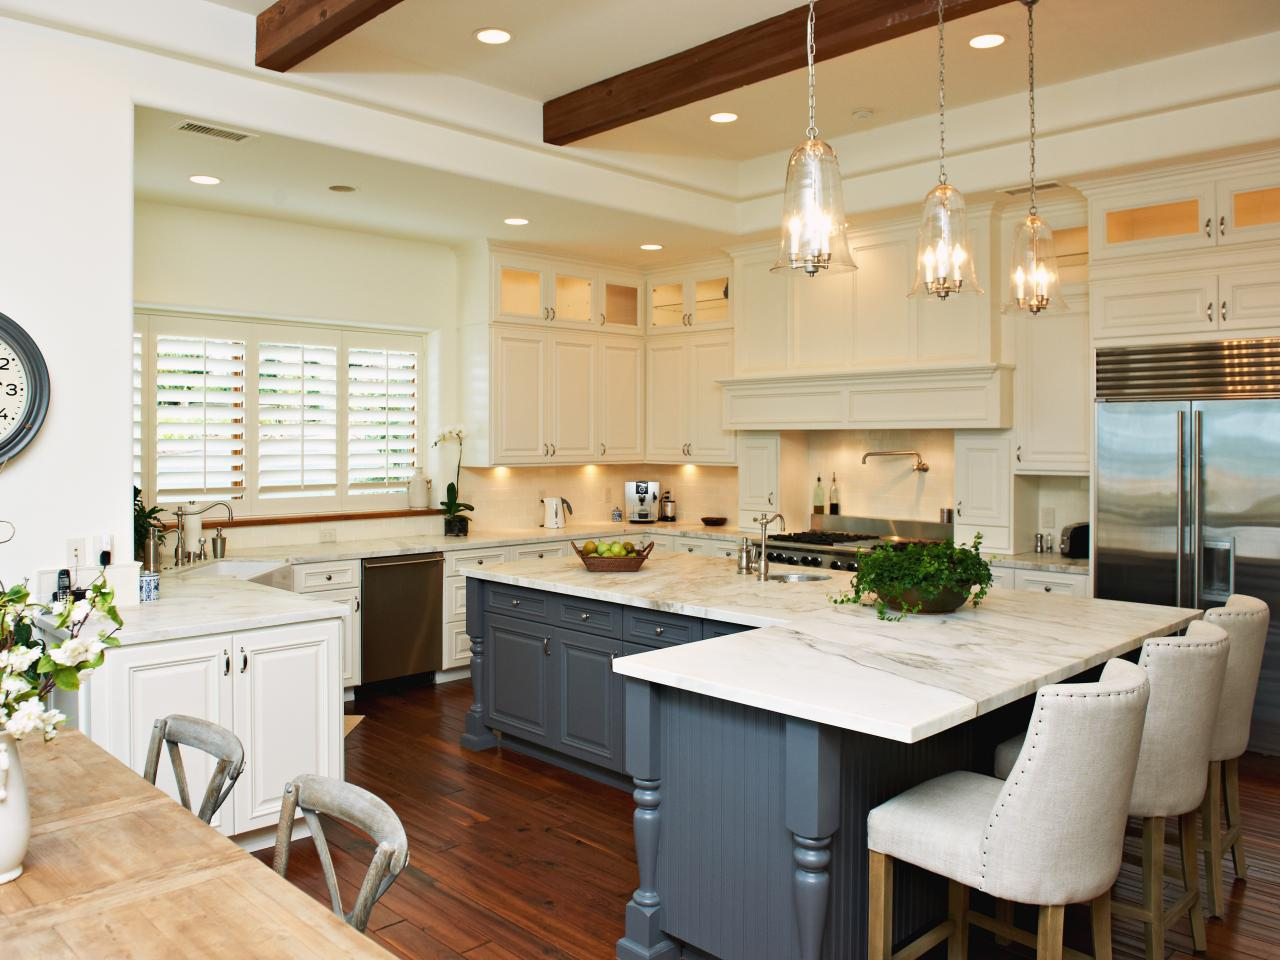 practical kitchen remodeling ideas that you should know on kitchen remodeling and design ideas hgtv id=89277